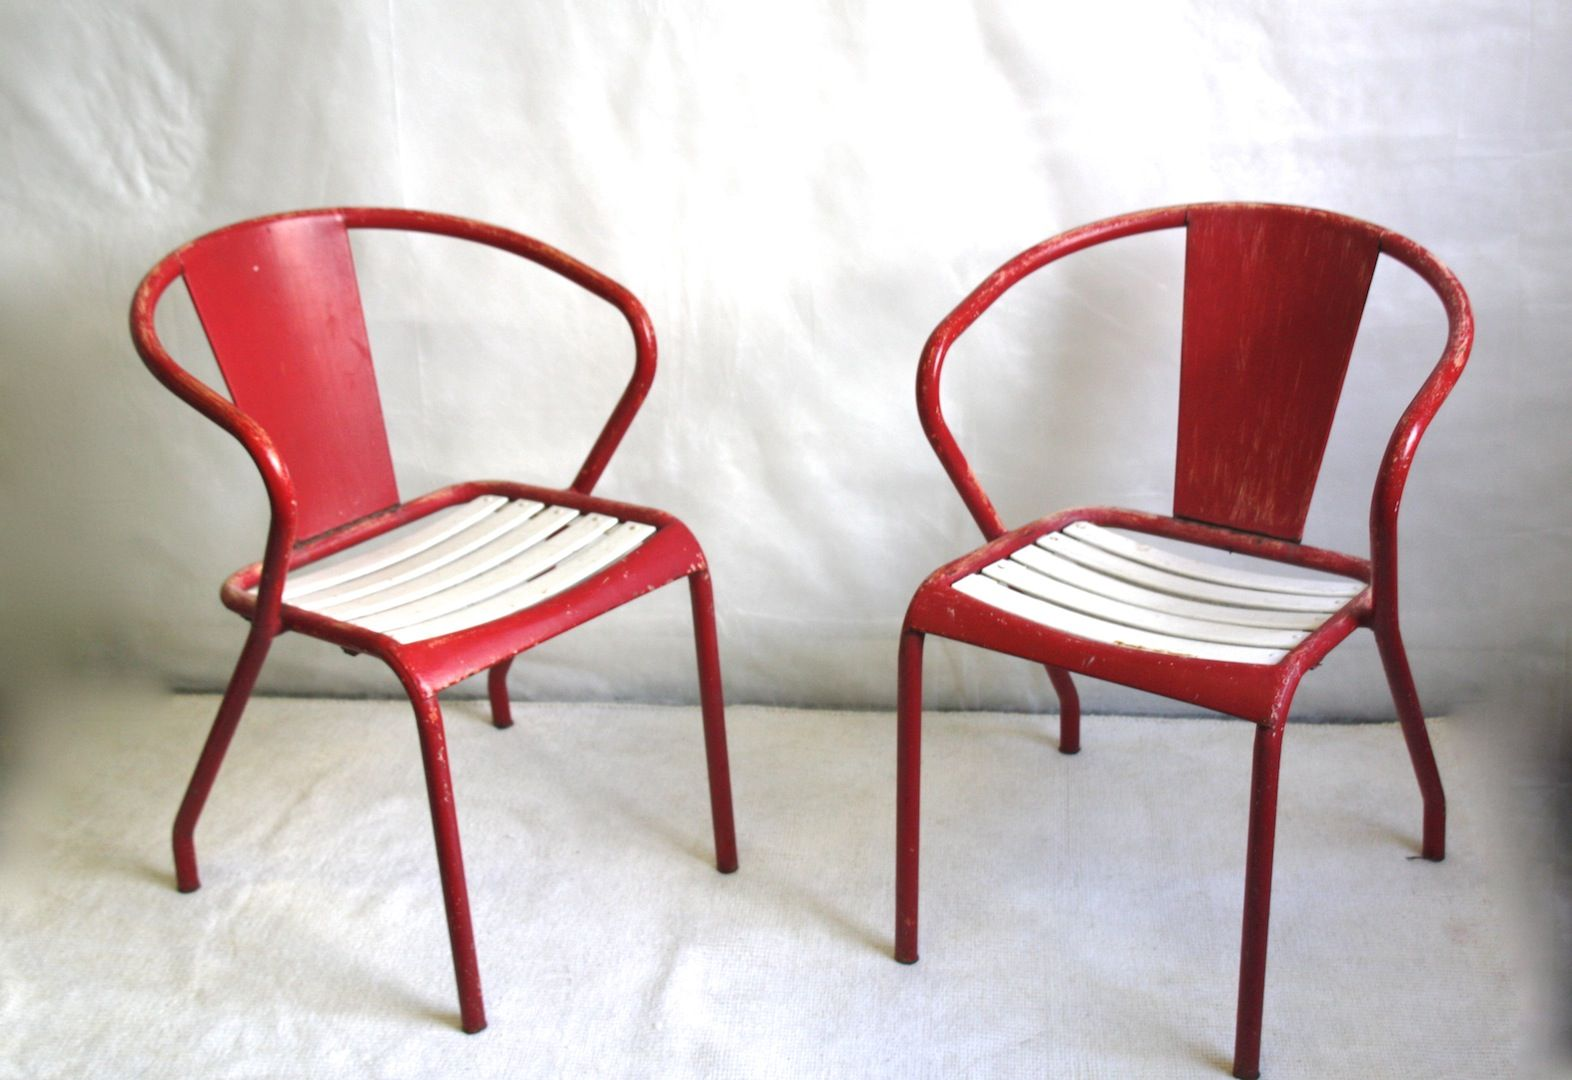 Maybe a little frayed but ultra design Tolix's vintage chairs